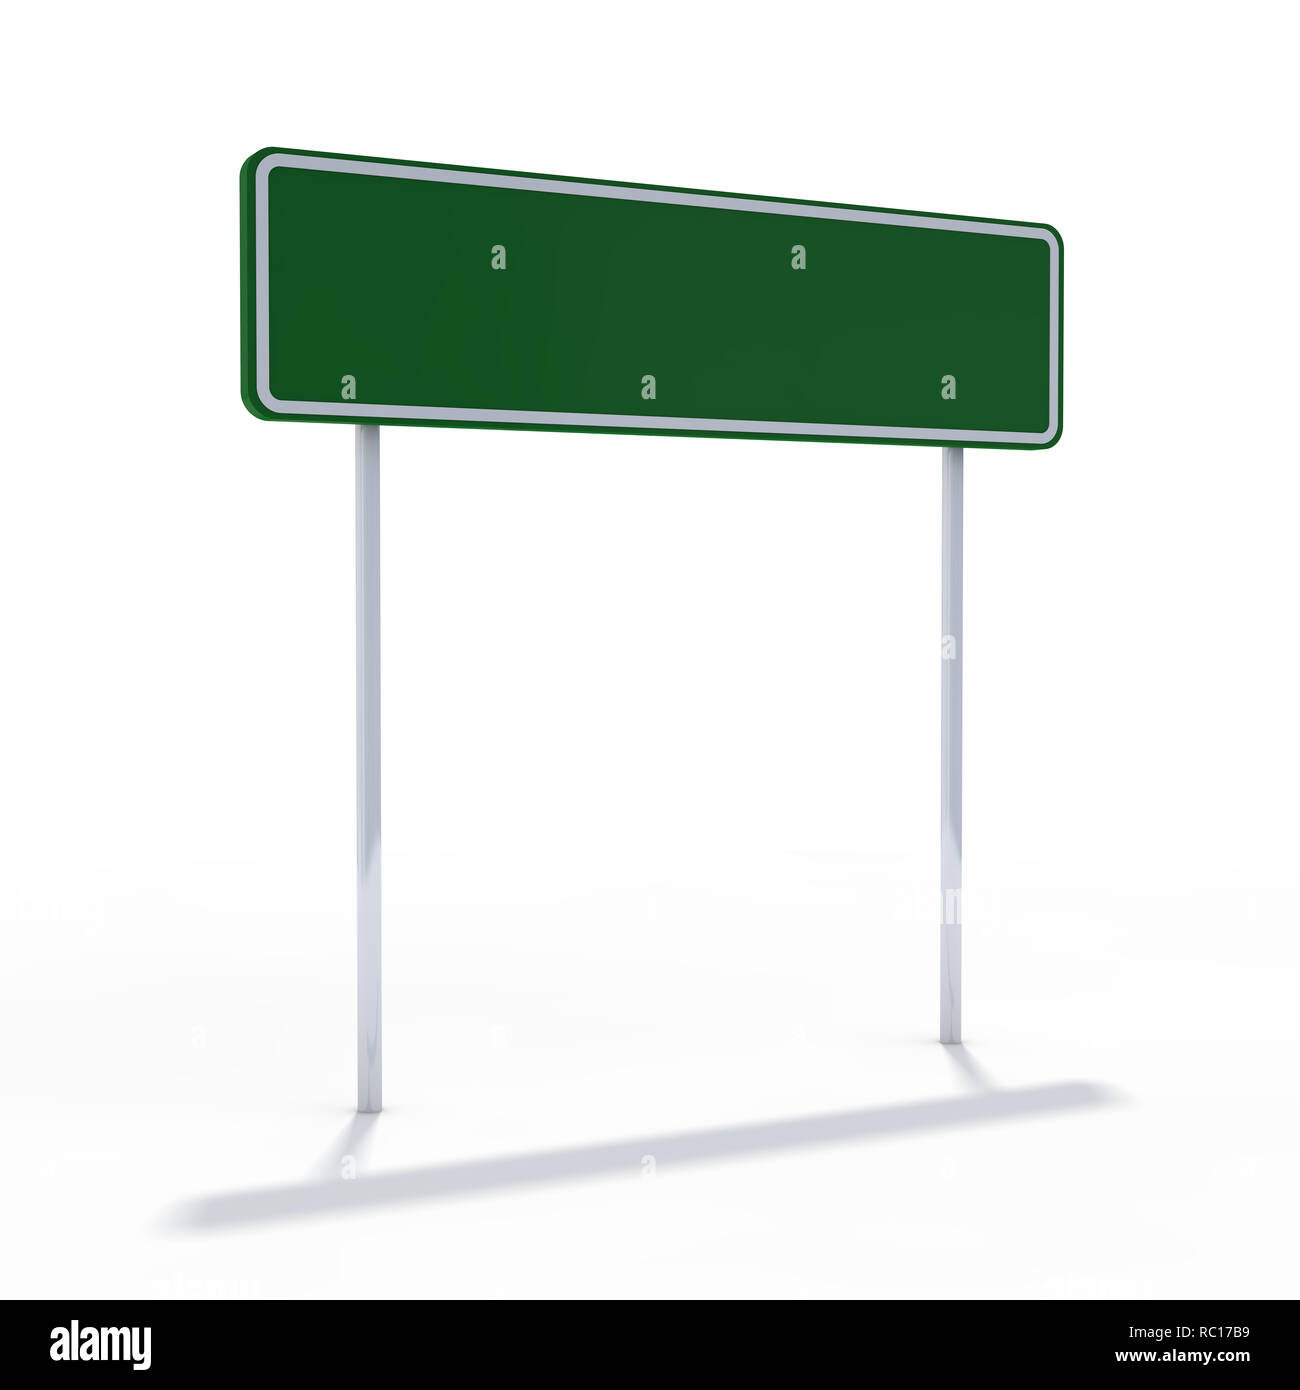 Blank green road sign or Empty traffic signs. 3D rendering - Stock Image